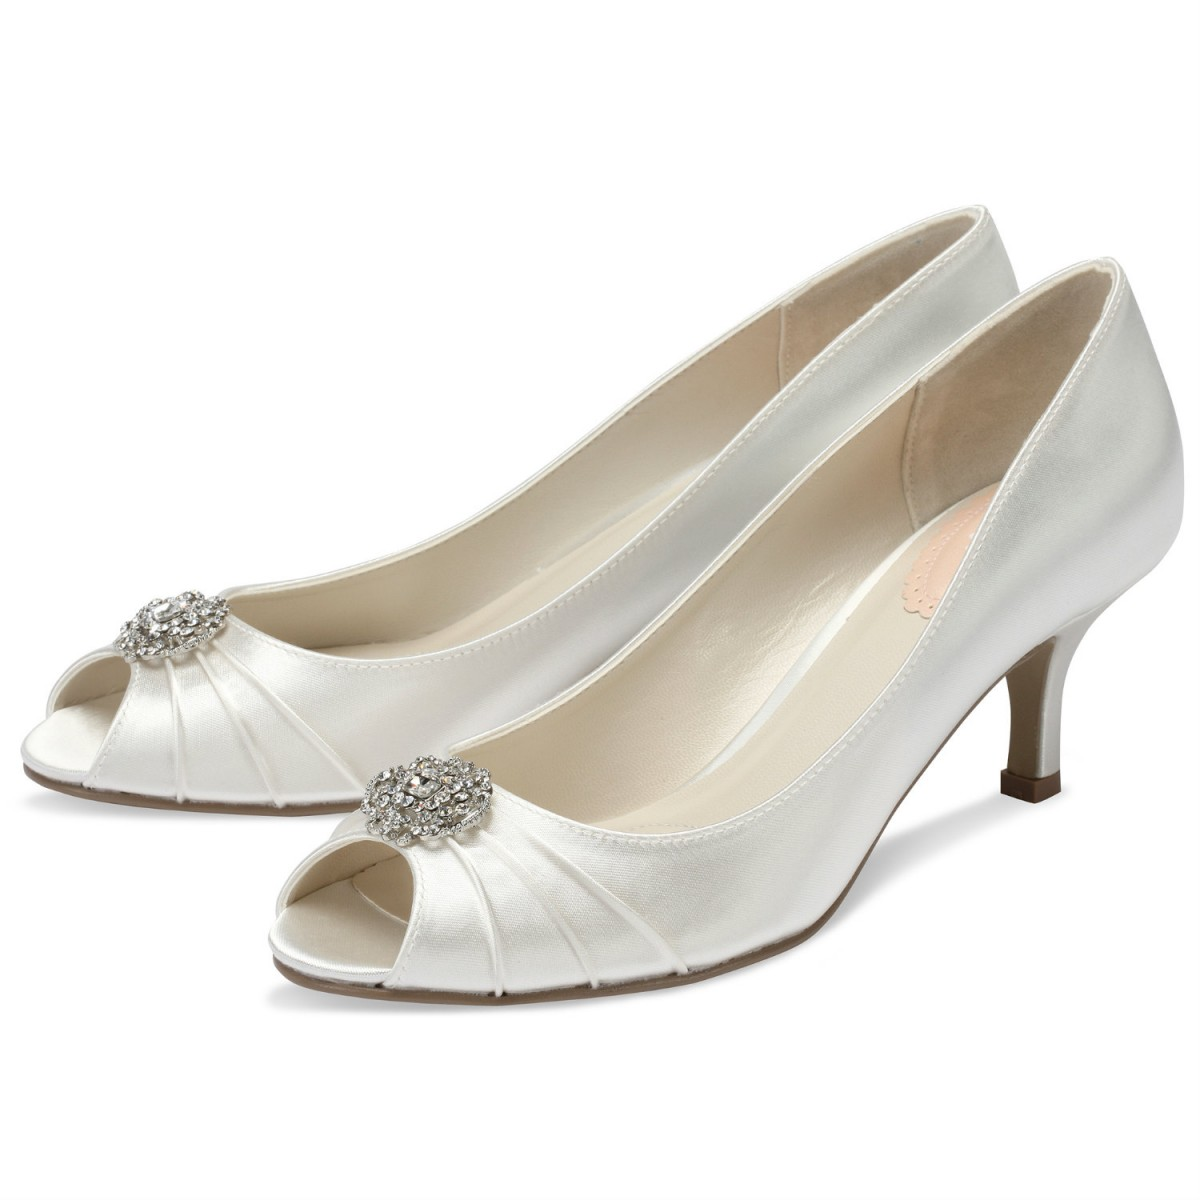 ad308ae18d9 How to choose your perfect wedding shoes - Love Our Wedding